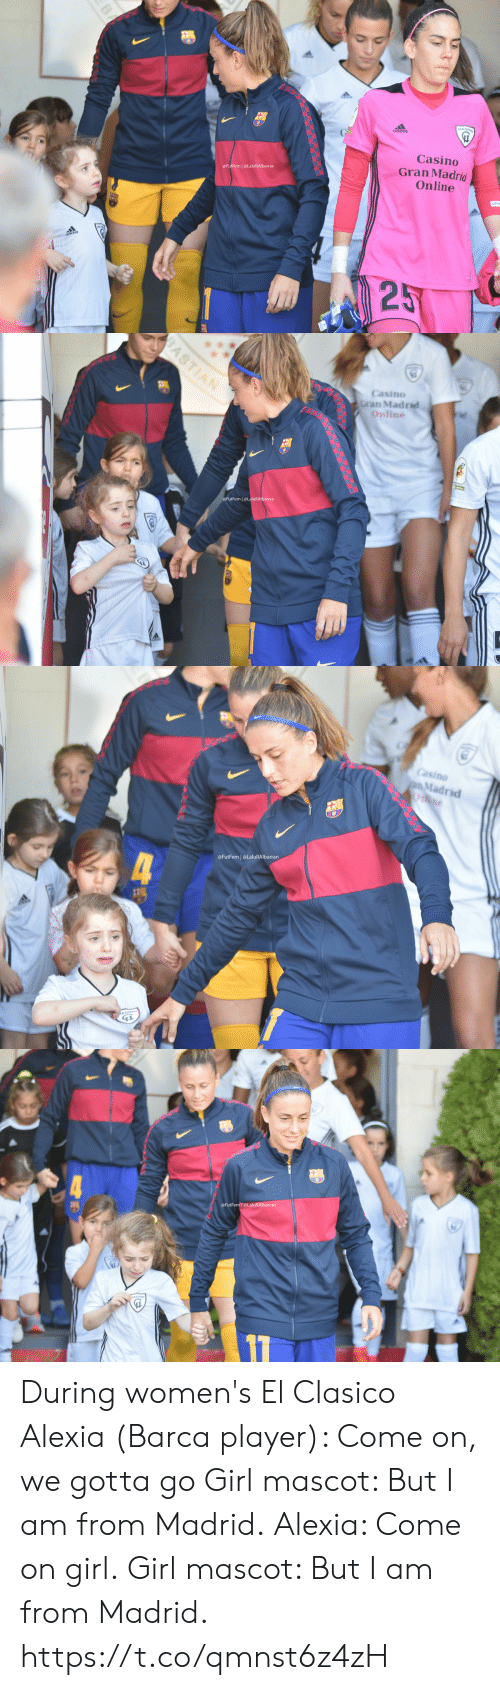 gotta-go: Casino  Gran Madrid  Online  @FutFem | @LaluRAlbarran  25  BA   BASTIAN  Casino  Gran Madrid  Online  FutFem @LaluRAlbarran   Casino  pMadrid  Onne  @FutFem @LaluRAlbarran  4  KADRIO   @FutFem@LaluRAlbarran During women's El Clasico  Alexia (Barca player): Come on, we gotta go Girl mascot: But I am from Madrid. Alexia: Come on girl. Girl mascot: But I am from Madrid.  https://t.co/qmnst6z4zH